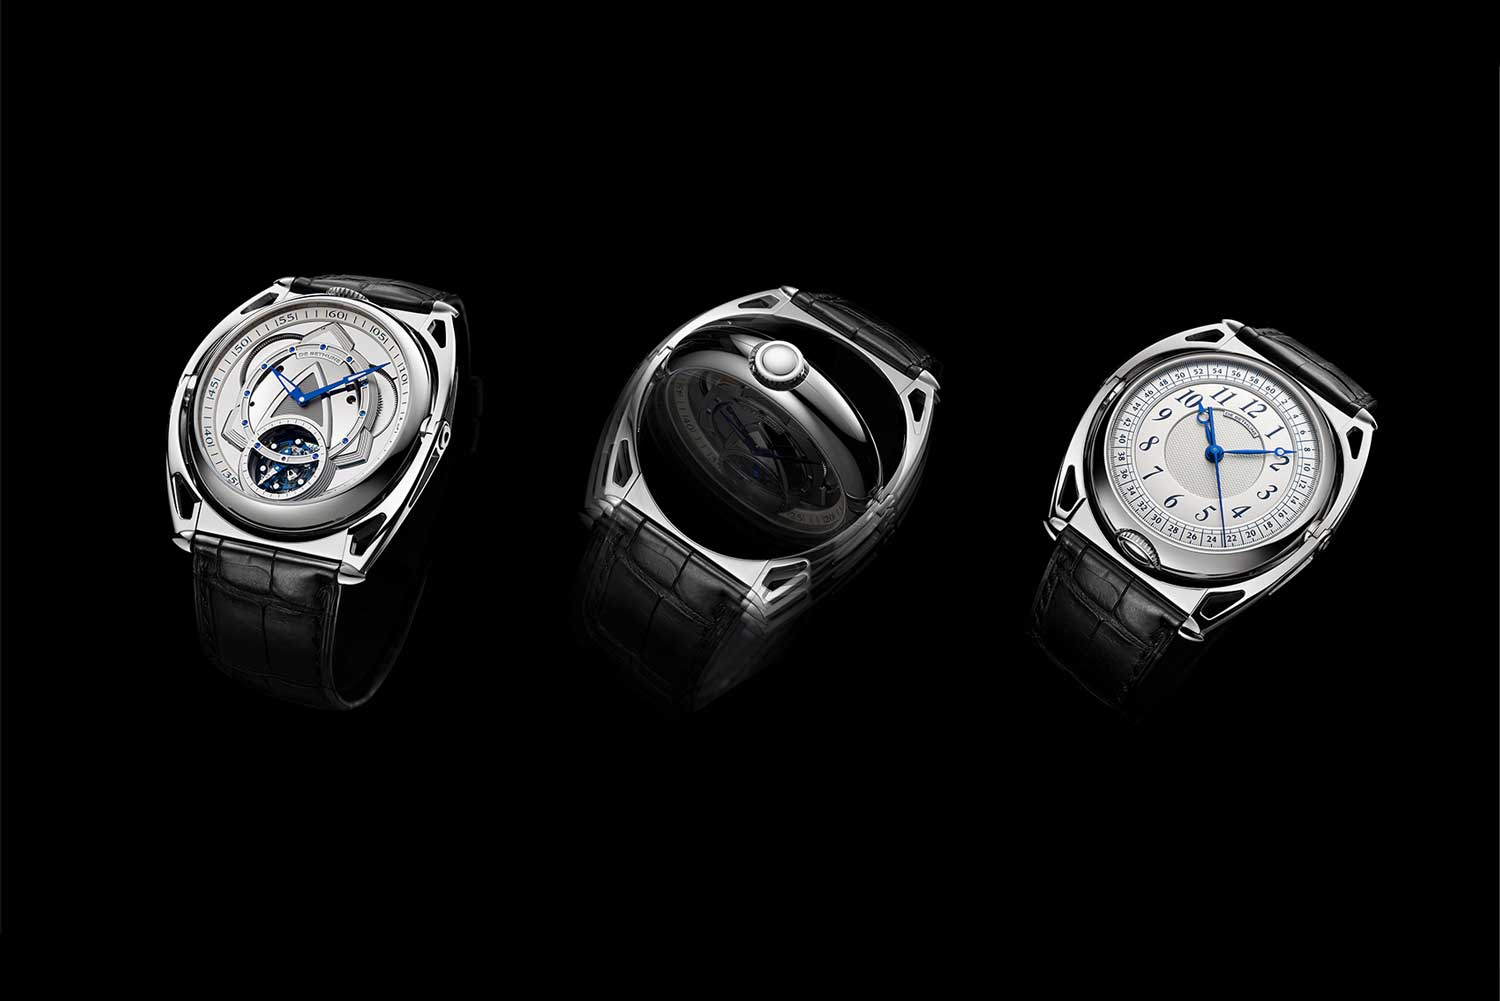 The two-sided De Bethune DB Kind of Two Tourbillon transforms between it's two faces along an axis on the articulating lugs of the timepiece